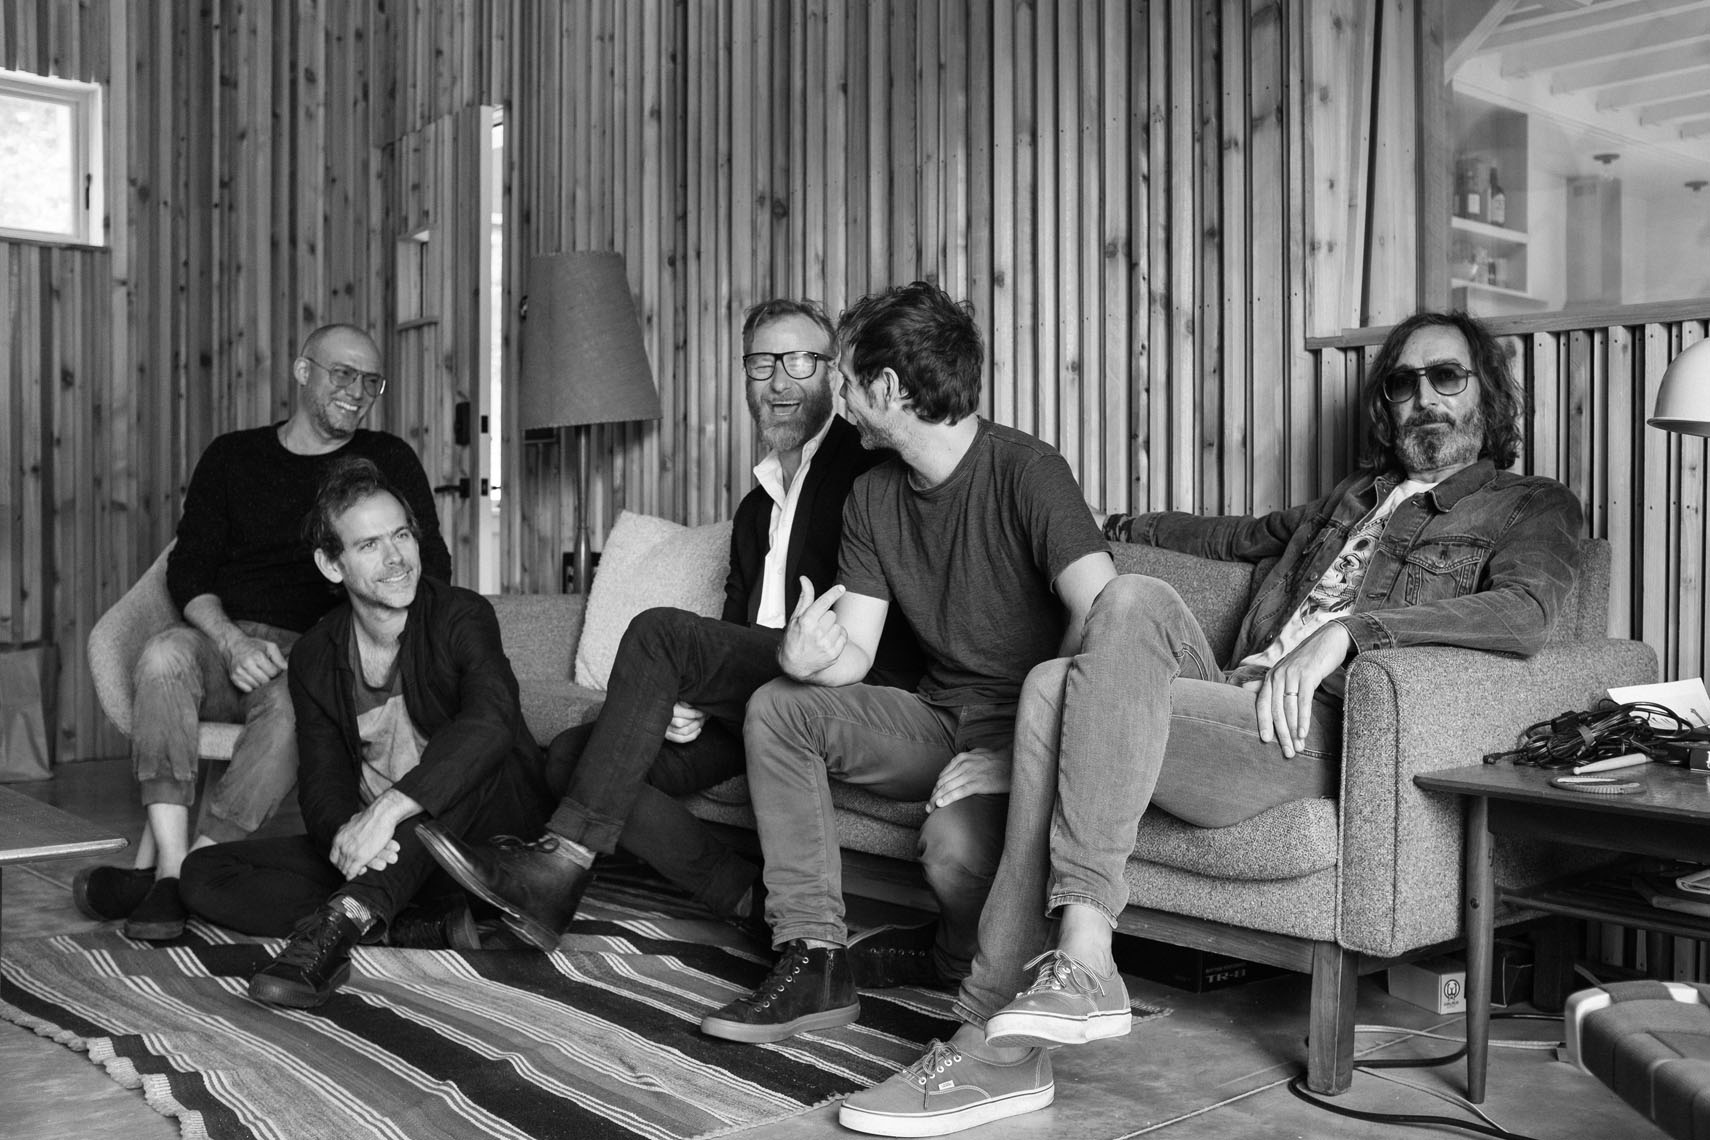 The National at the studio (Matt Berninger, Aaron Dessner, Bryce Dessner, Scott Devendorf and Bryan Devendorf)